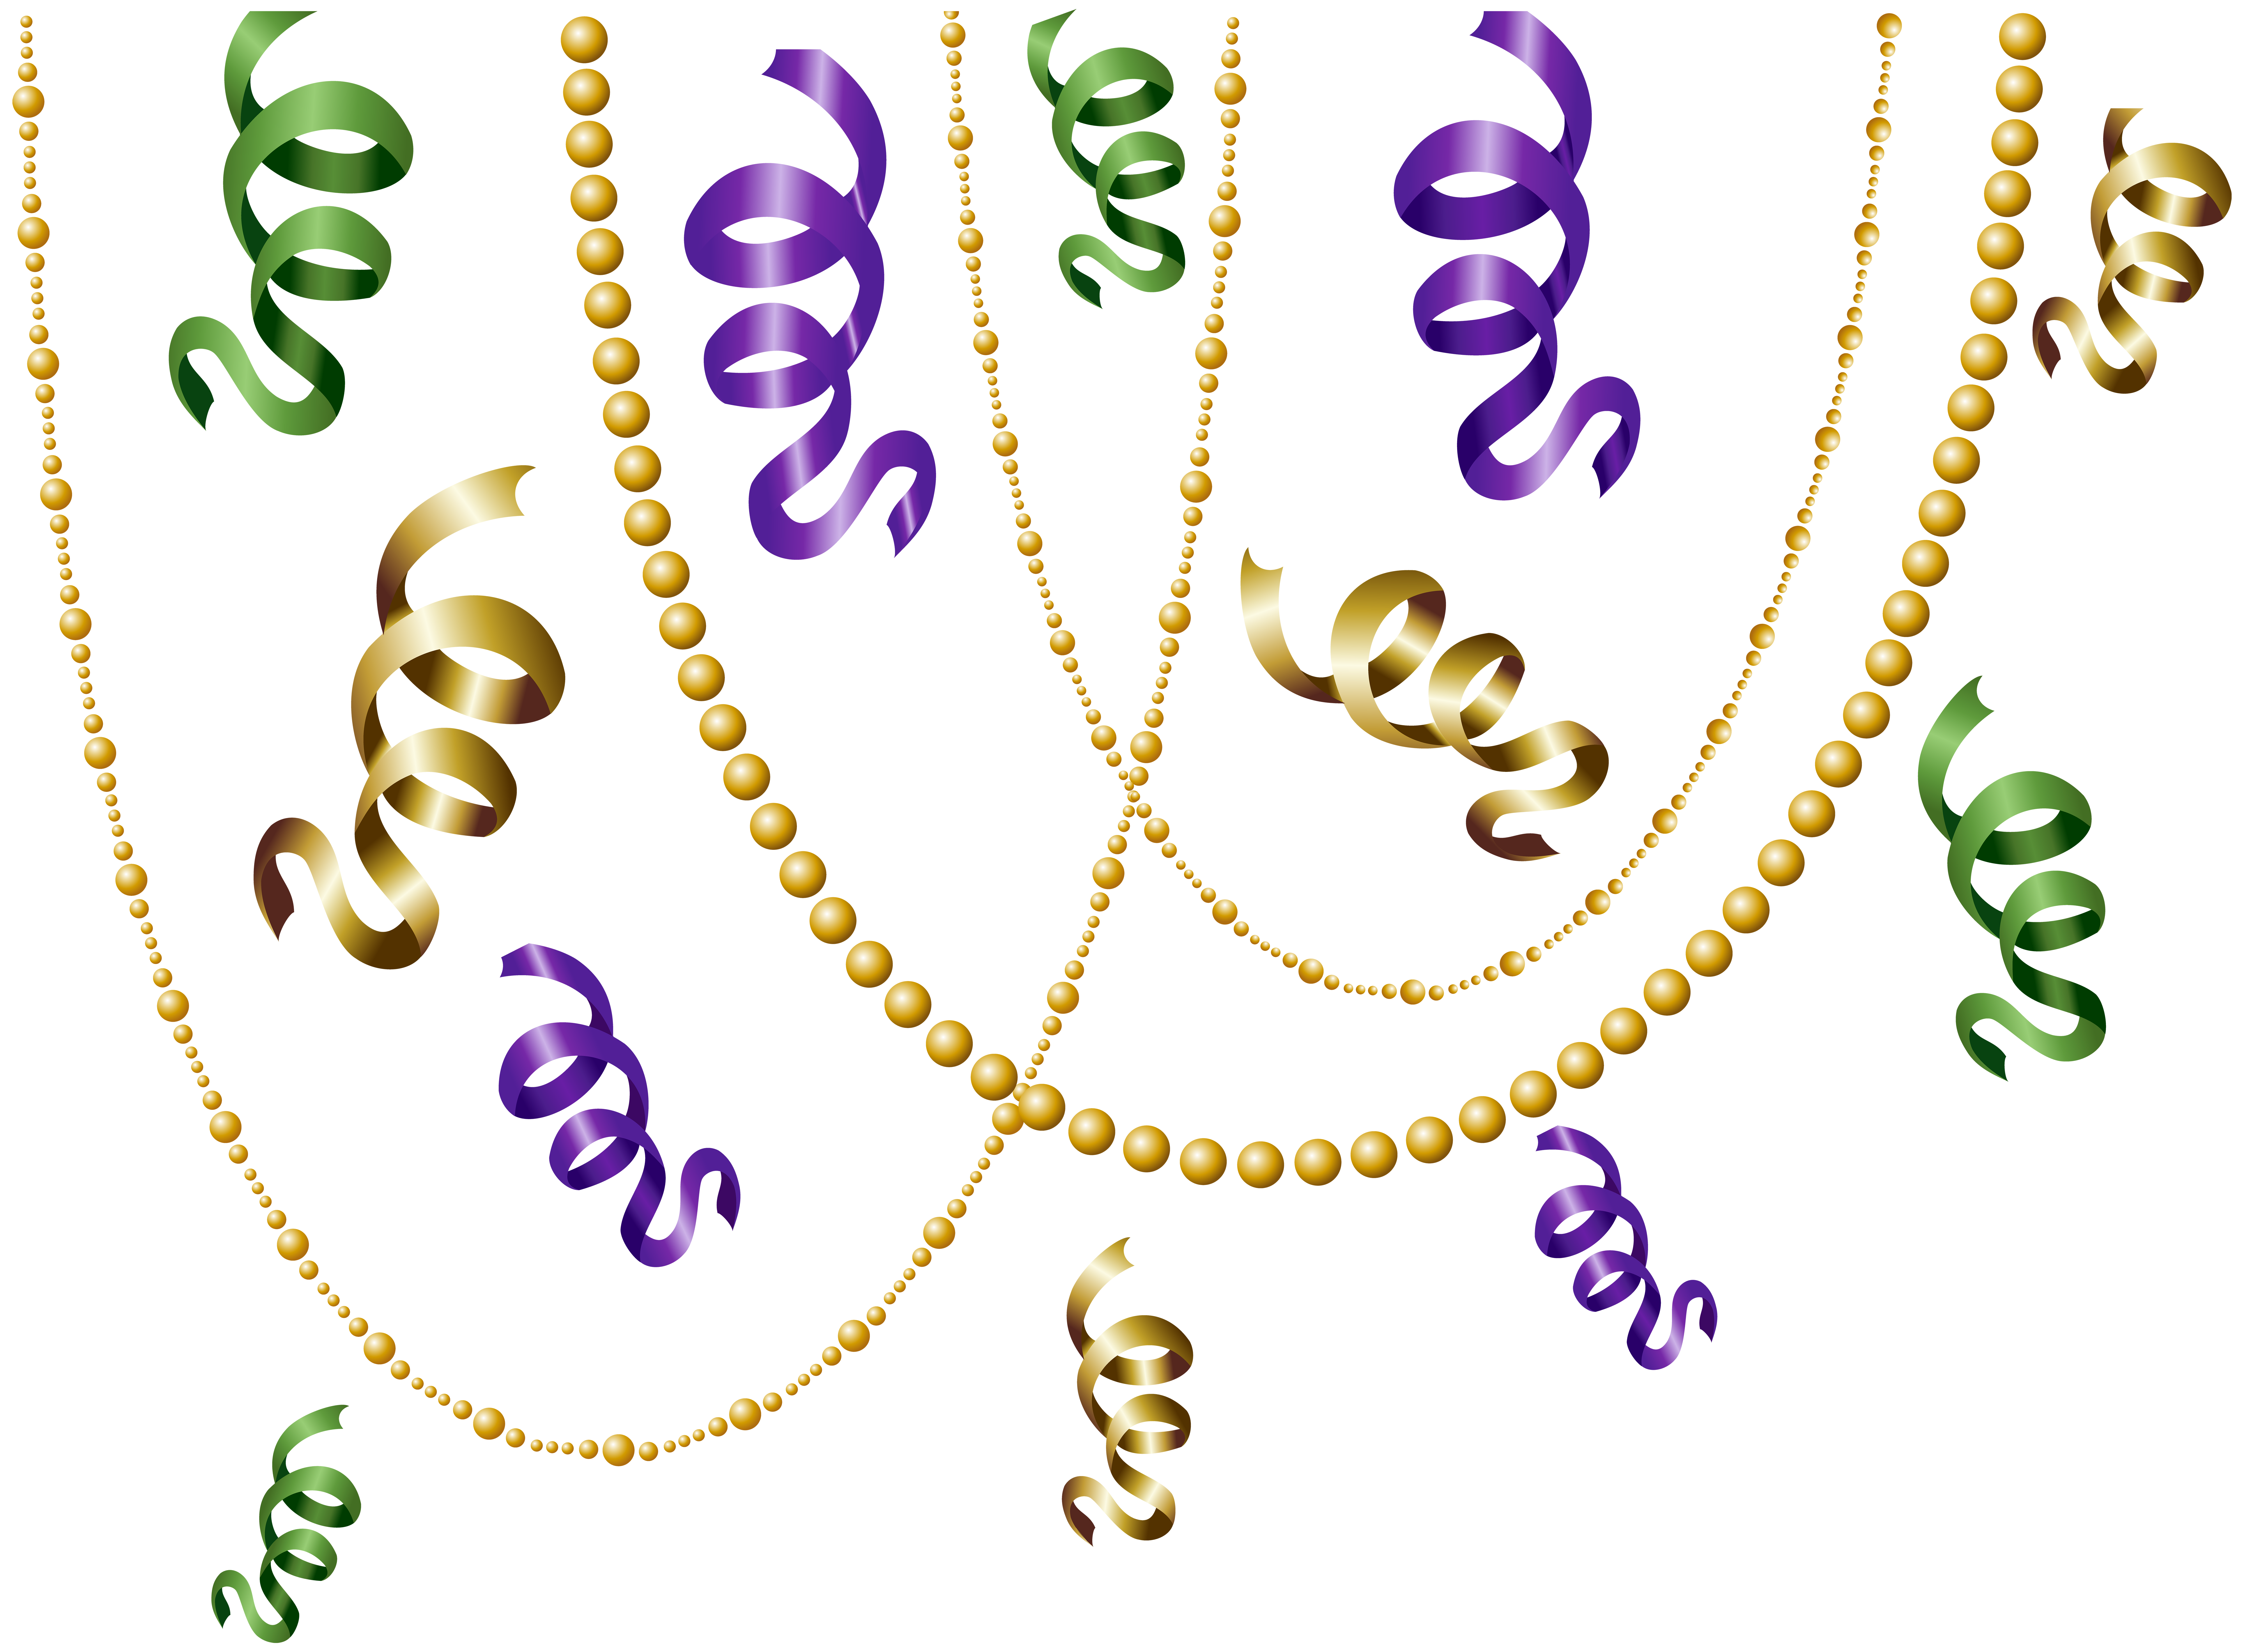 Mardi Gras Decoration Transparent Png Clip Art Image Gallery Yopriceville High Quality Images And Transparent P Clip Art Mardi Gras Mardi Gras Decorations